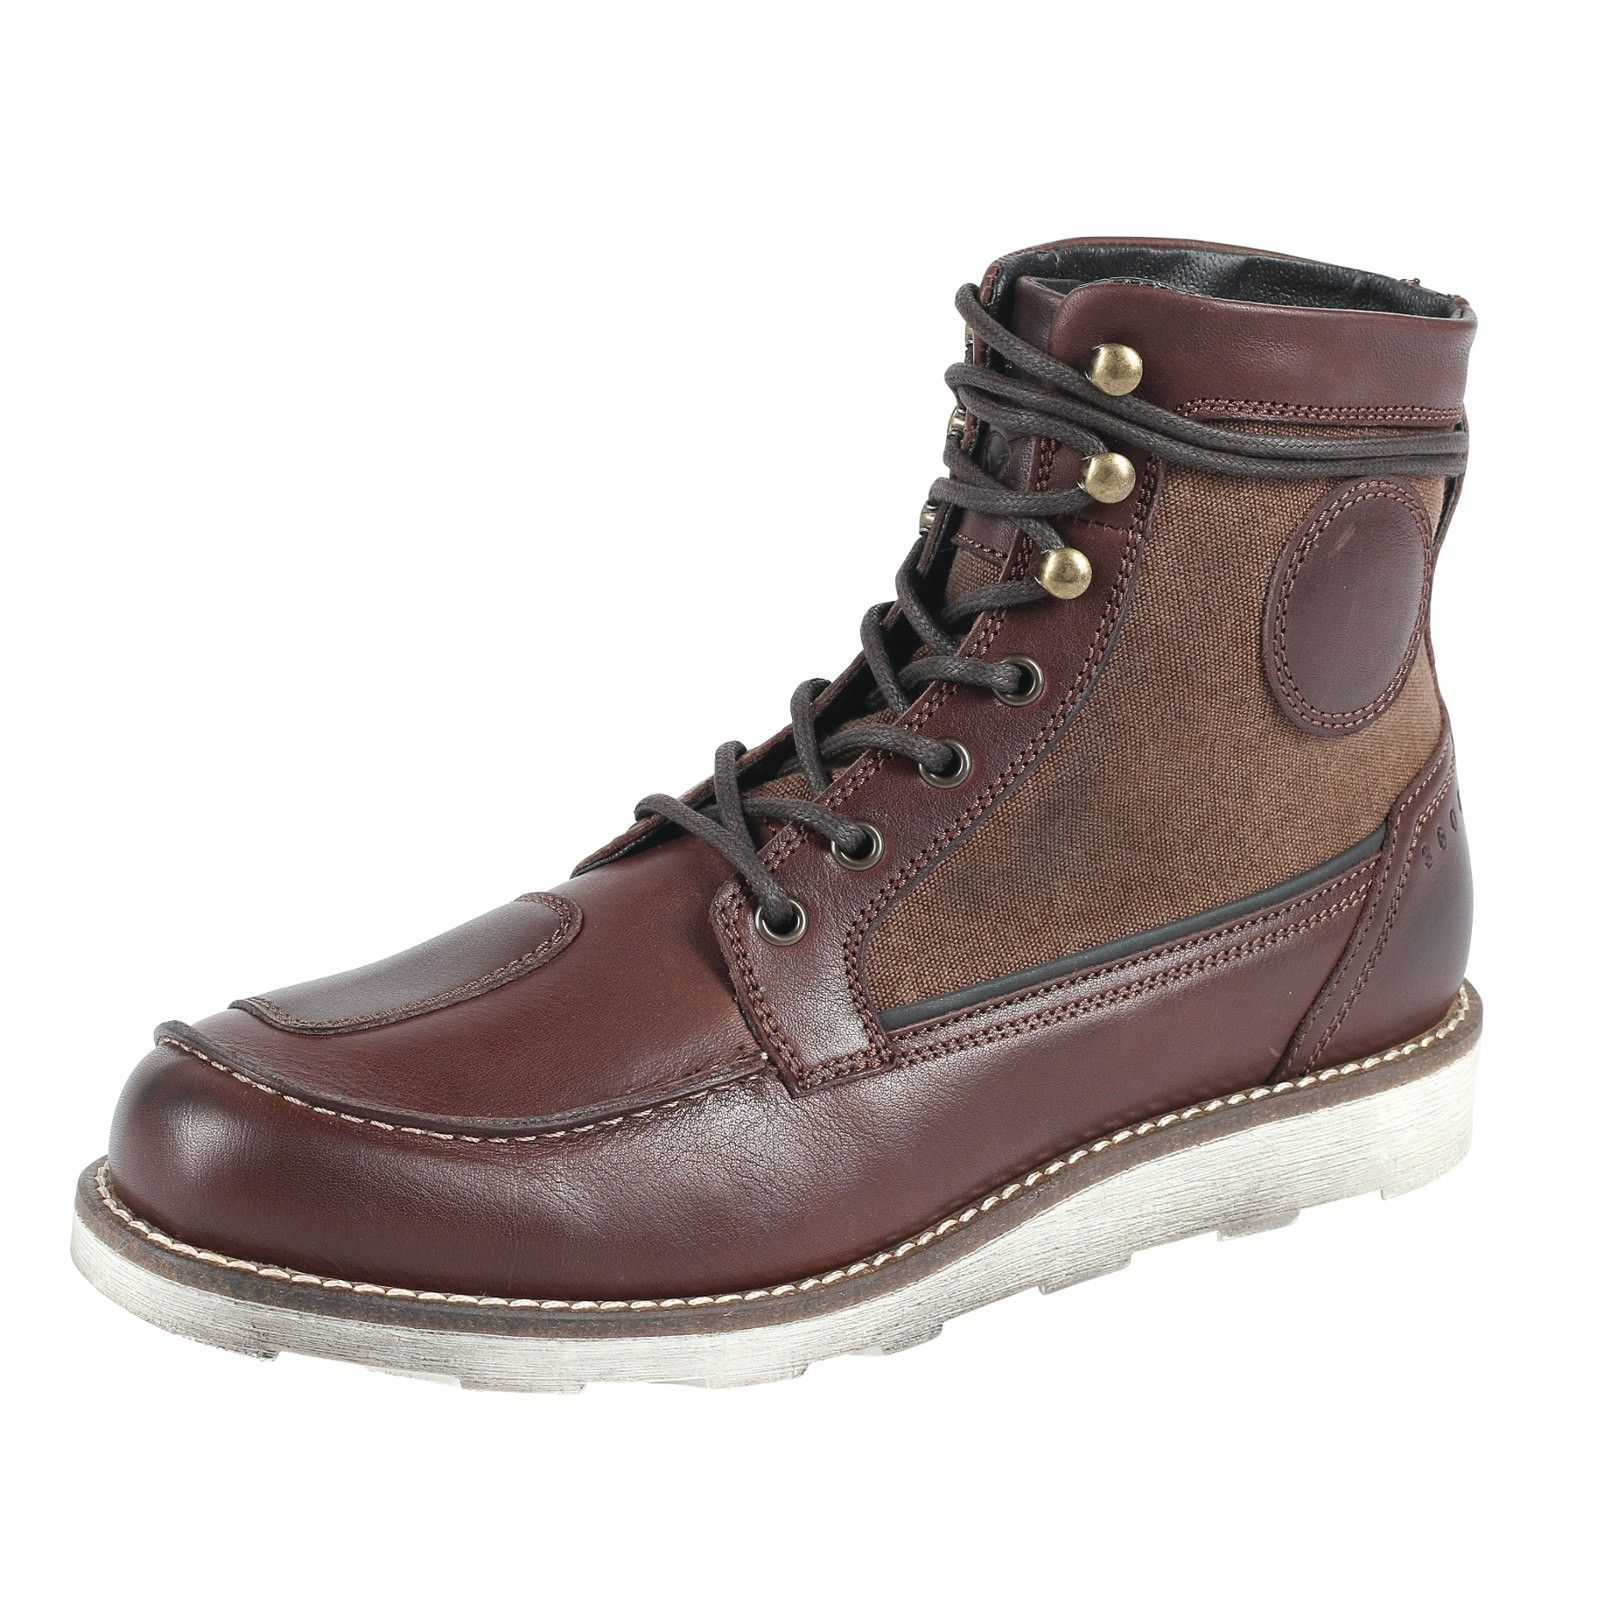 Explore Men's Leather Boots, Brown Brown, and more!